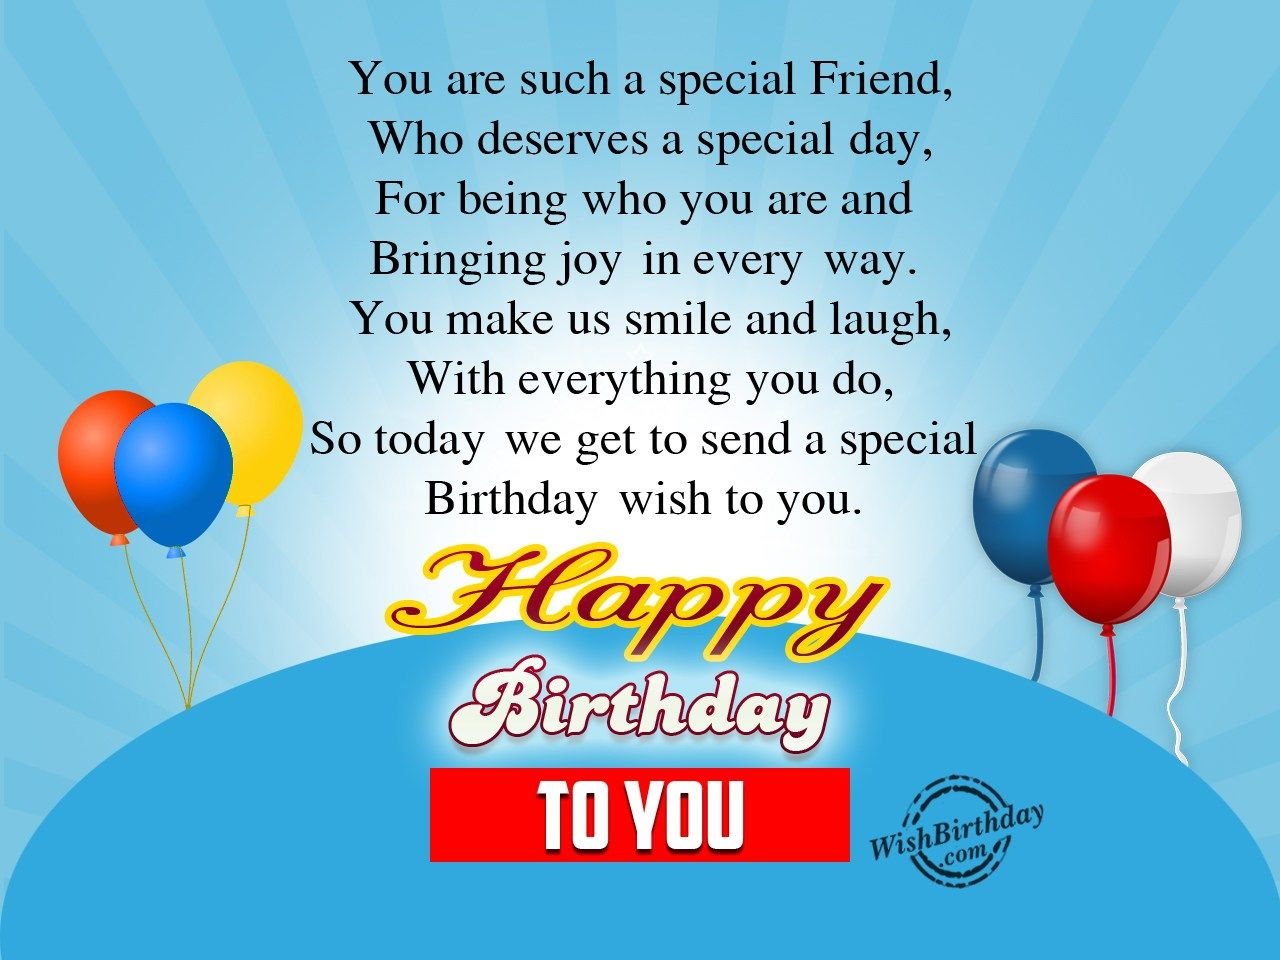 Sending Special wishes To My Dear Friend Wishes for